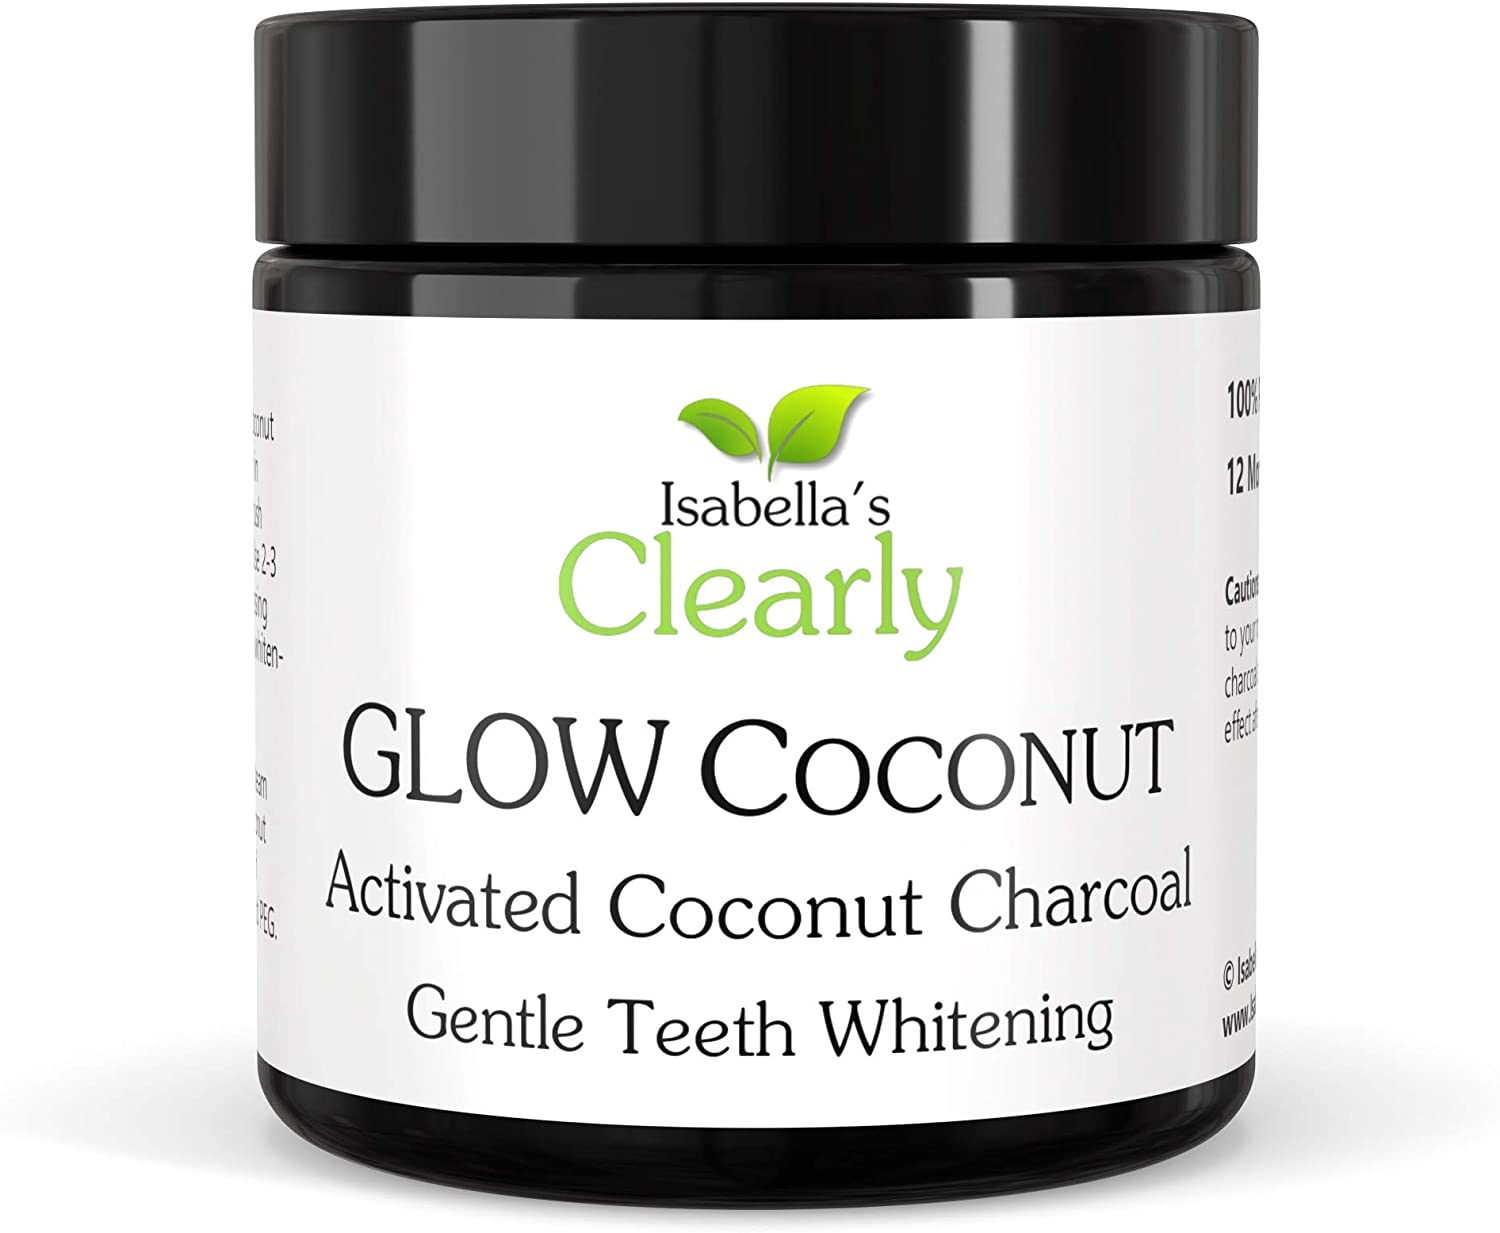 Clearly Glow Coconut, Teeth Whitening Activated Charcoal Powder   Pure, Natural, Food Grade, Non GMO, Made in USA   Whiten Teeth Naturally (12 Months Supply (100g))